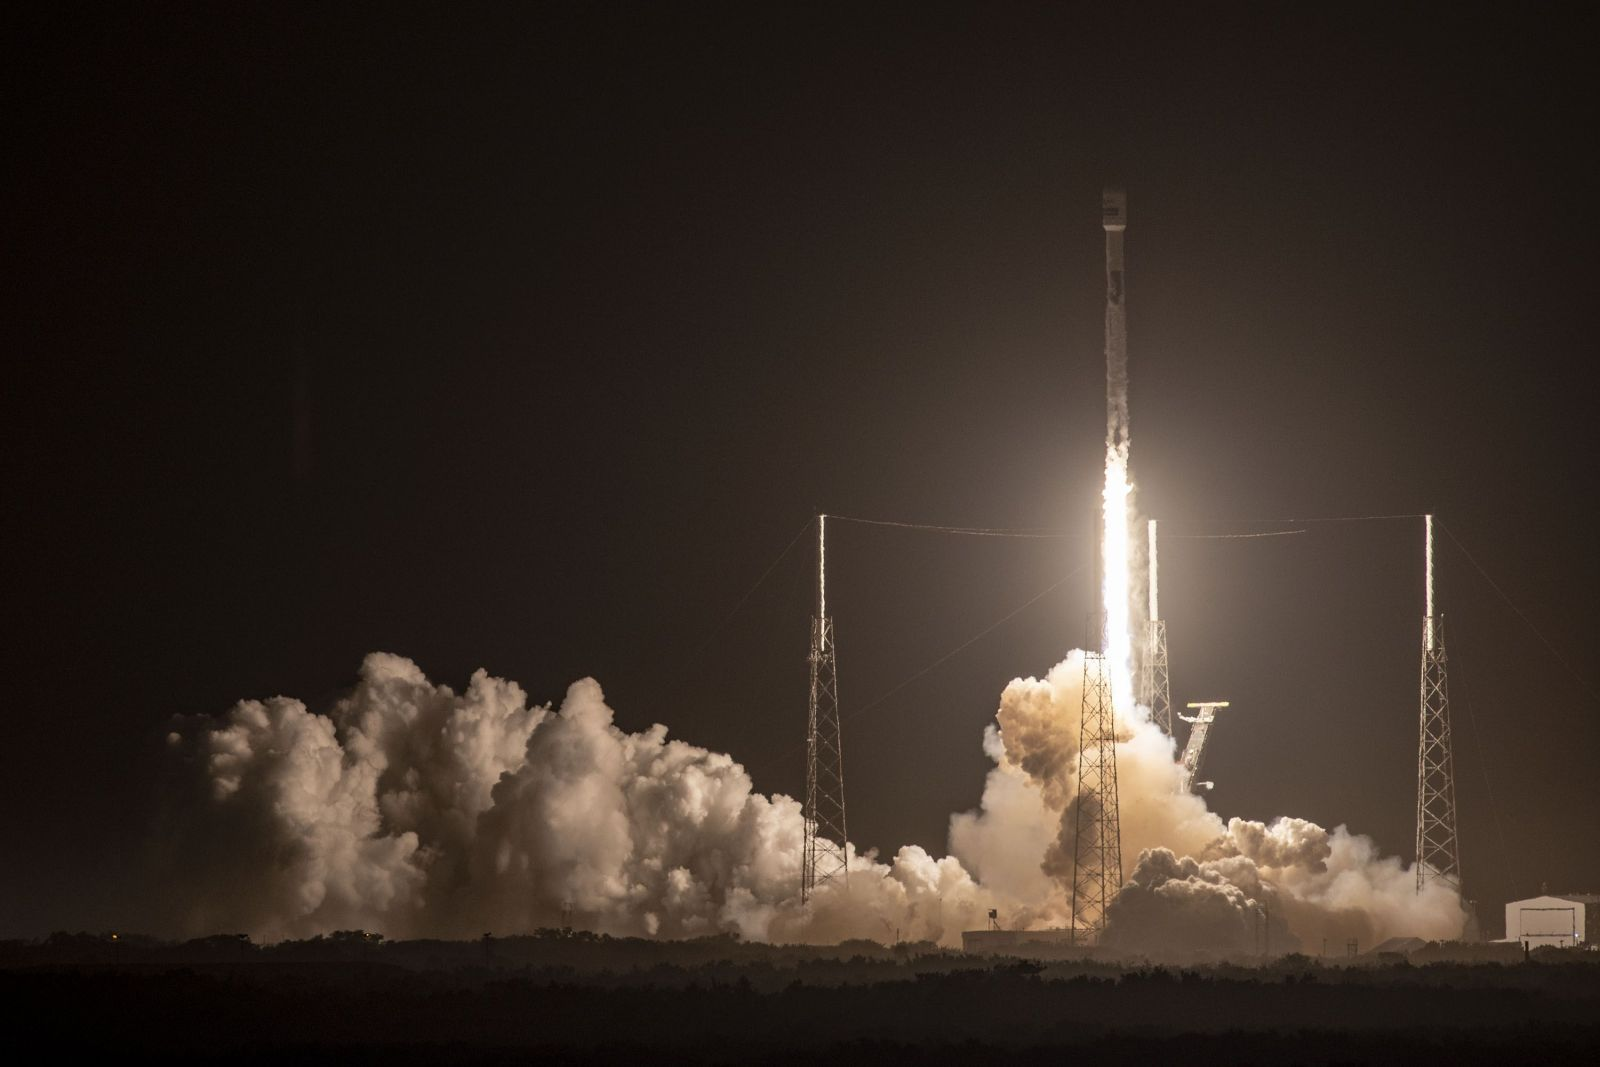 A SpaceX Falcon 9 rocket with the JCSAT-18 / Kacific-1 satellite launches from Cape Canaveral's Space Launch Complex 40 in Florida. Photo Credit: SpaceX